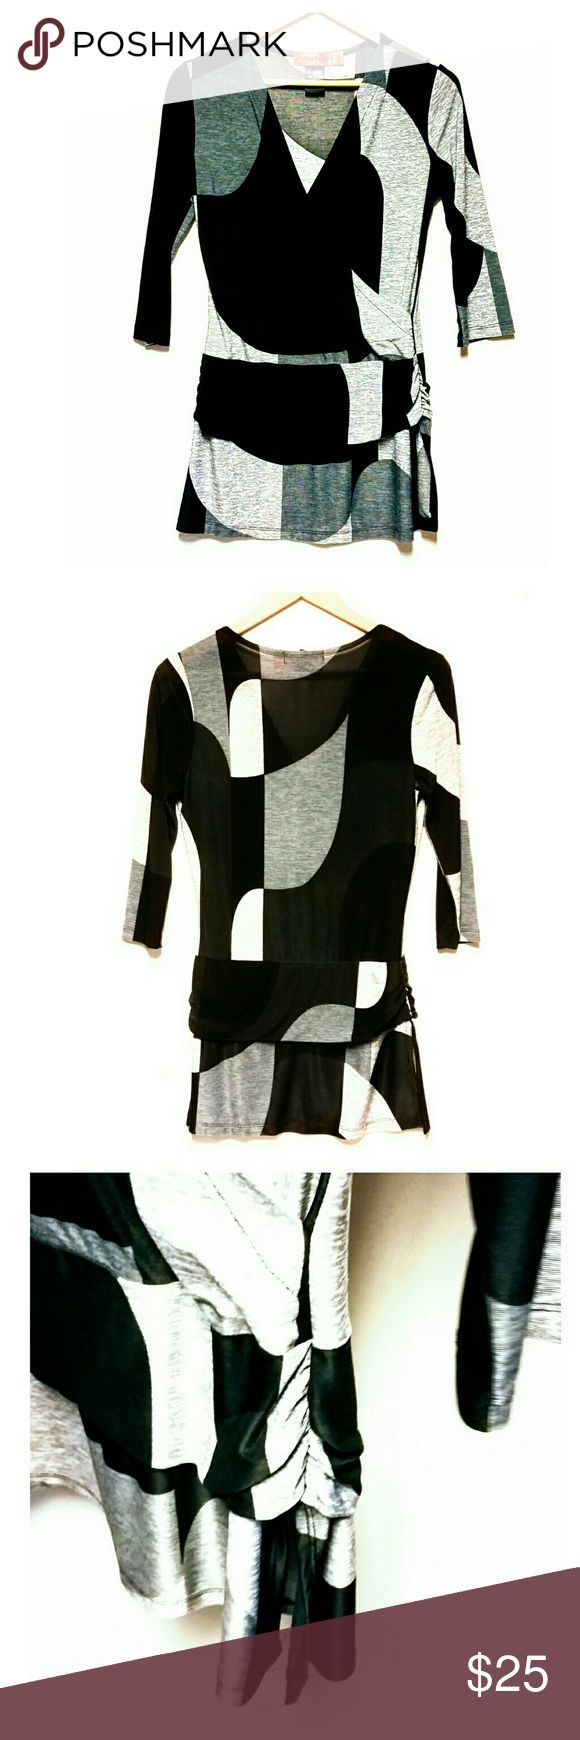 "Urban Mango Top Super cute black and gray top by Urban Mango. Size M. Excellent pre-owned condition. Approximate measurements laying flat: length 30"", bust 17.5"", waist waist 14.5"", sleeves 17"". Three-quarter length sleeves. Urban Mango Tops"